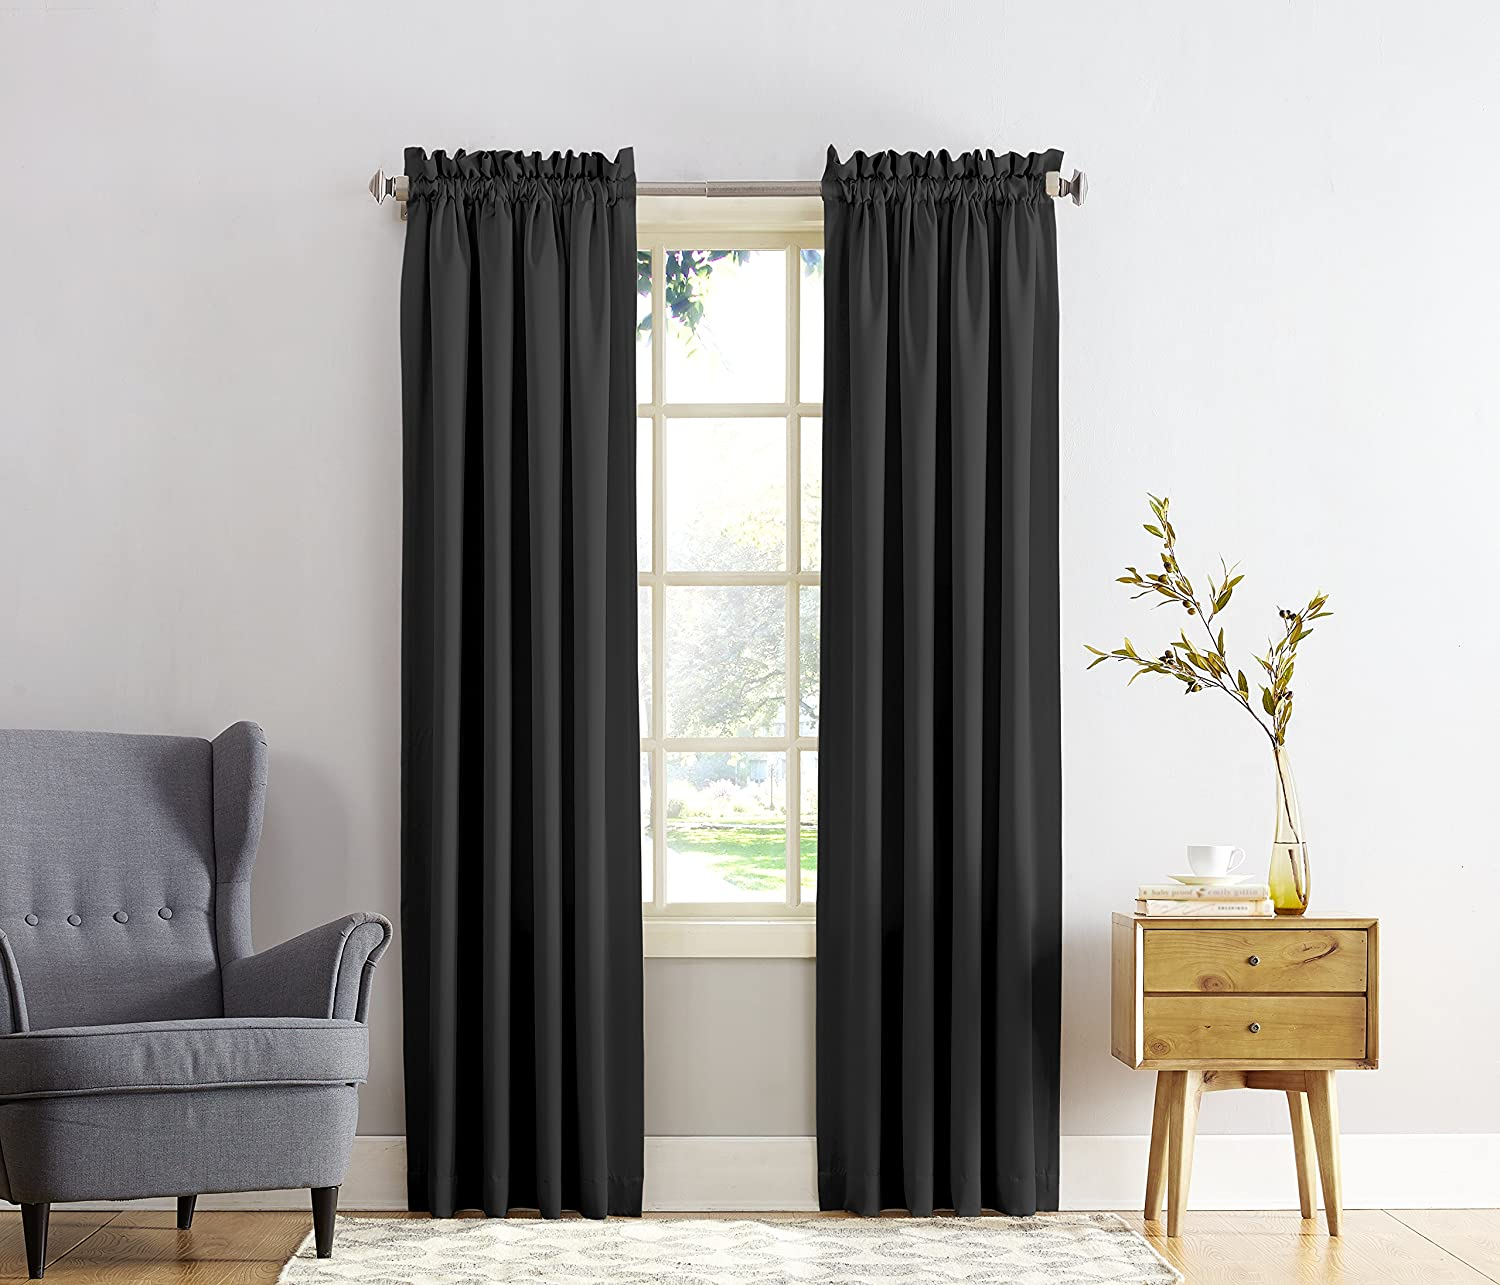 Lovely Energy Efficient Blackout Curtains